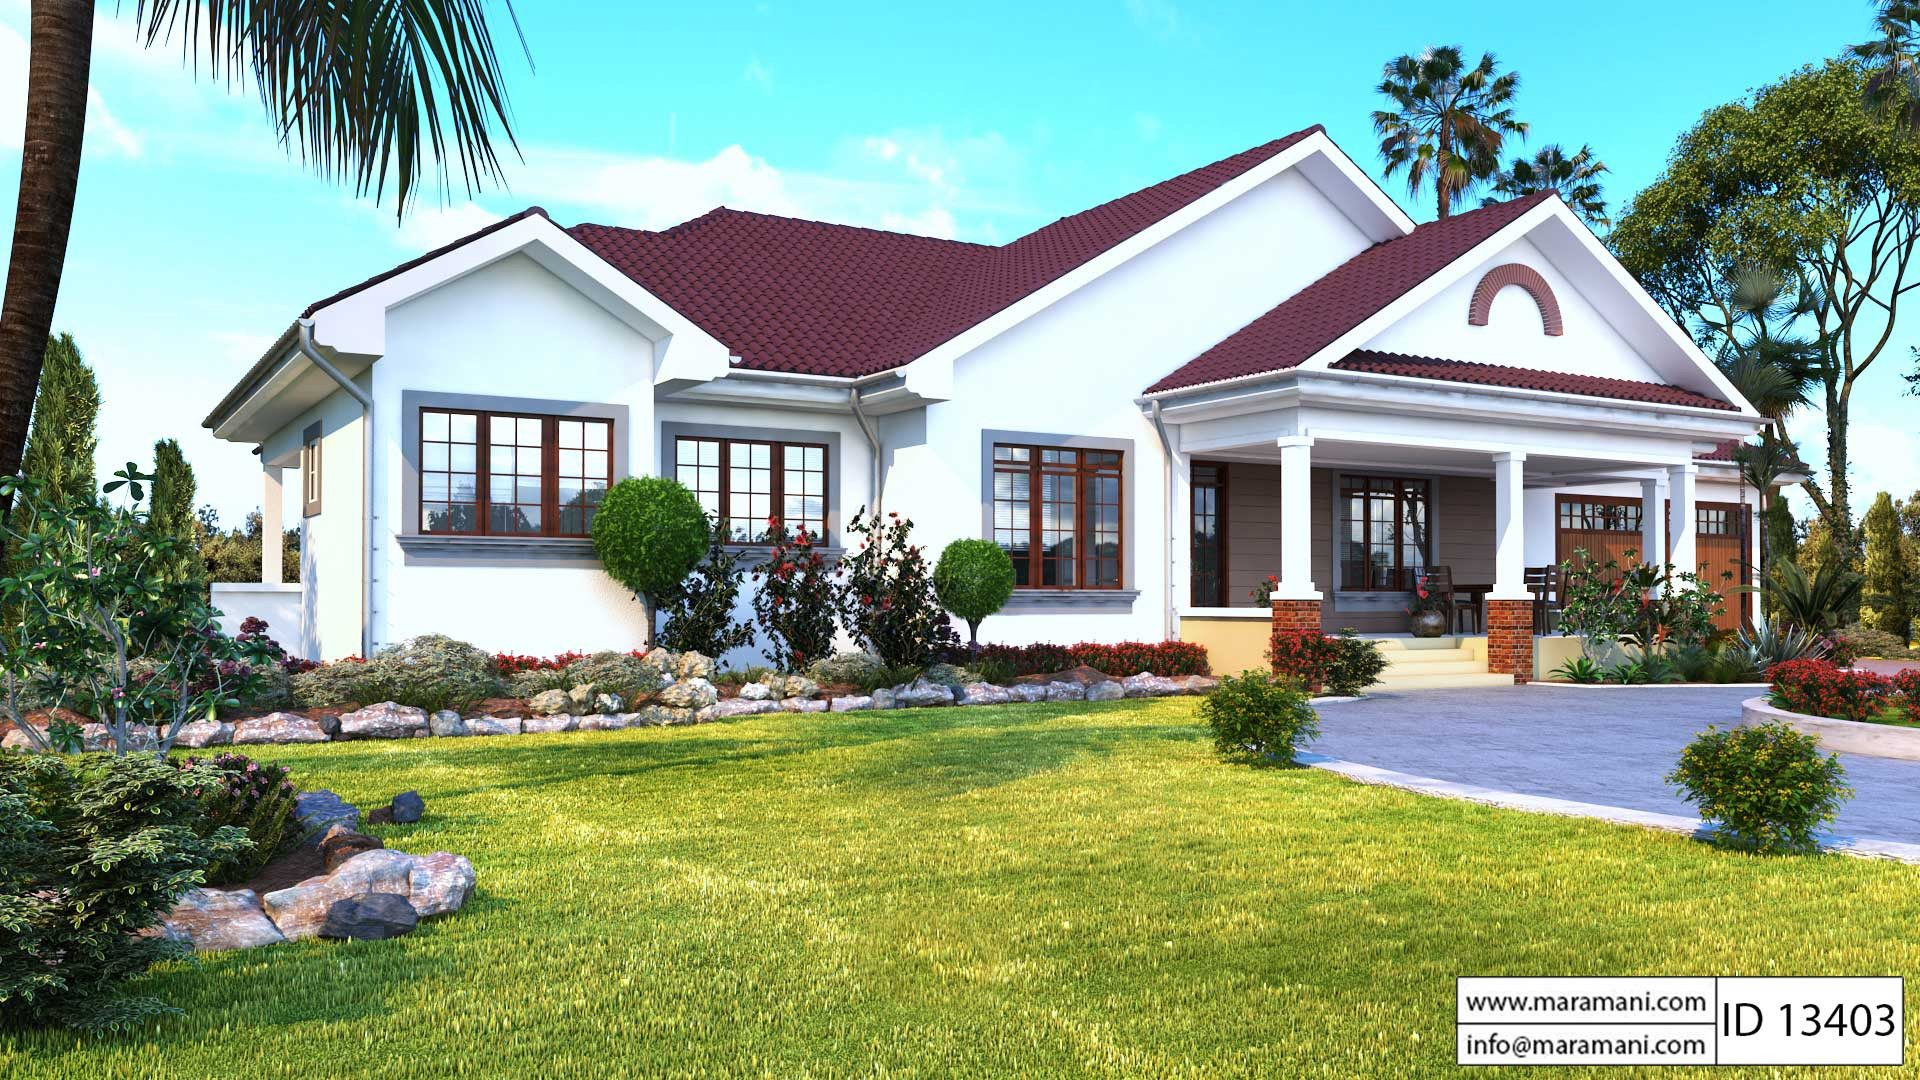 Six bedroom house plan ld maramani com floor for 3 bedroom bungalow plans